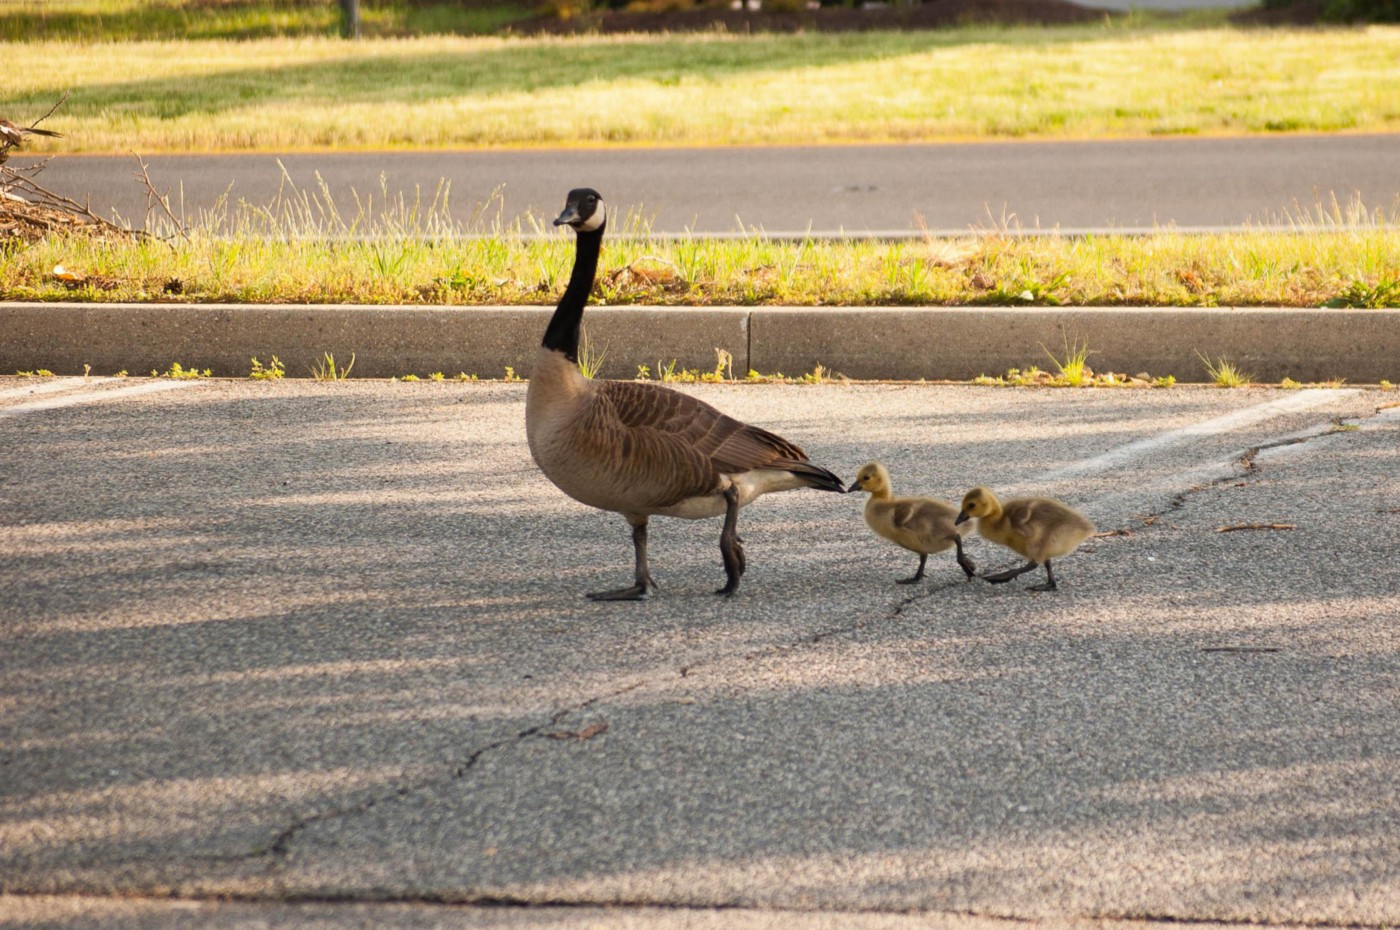 a goose with two followers (its goslings)